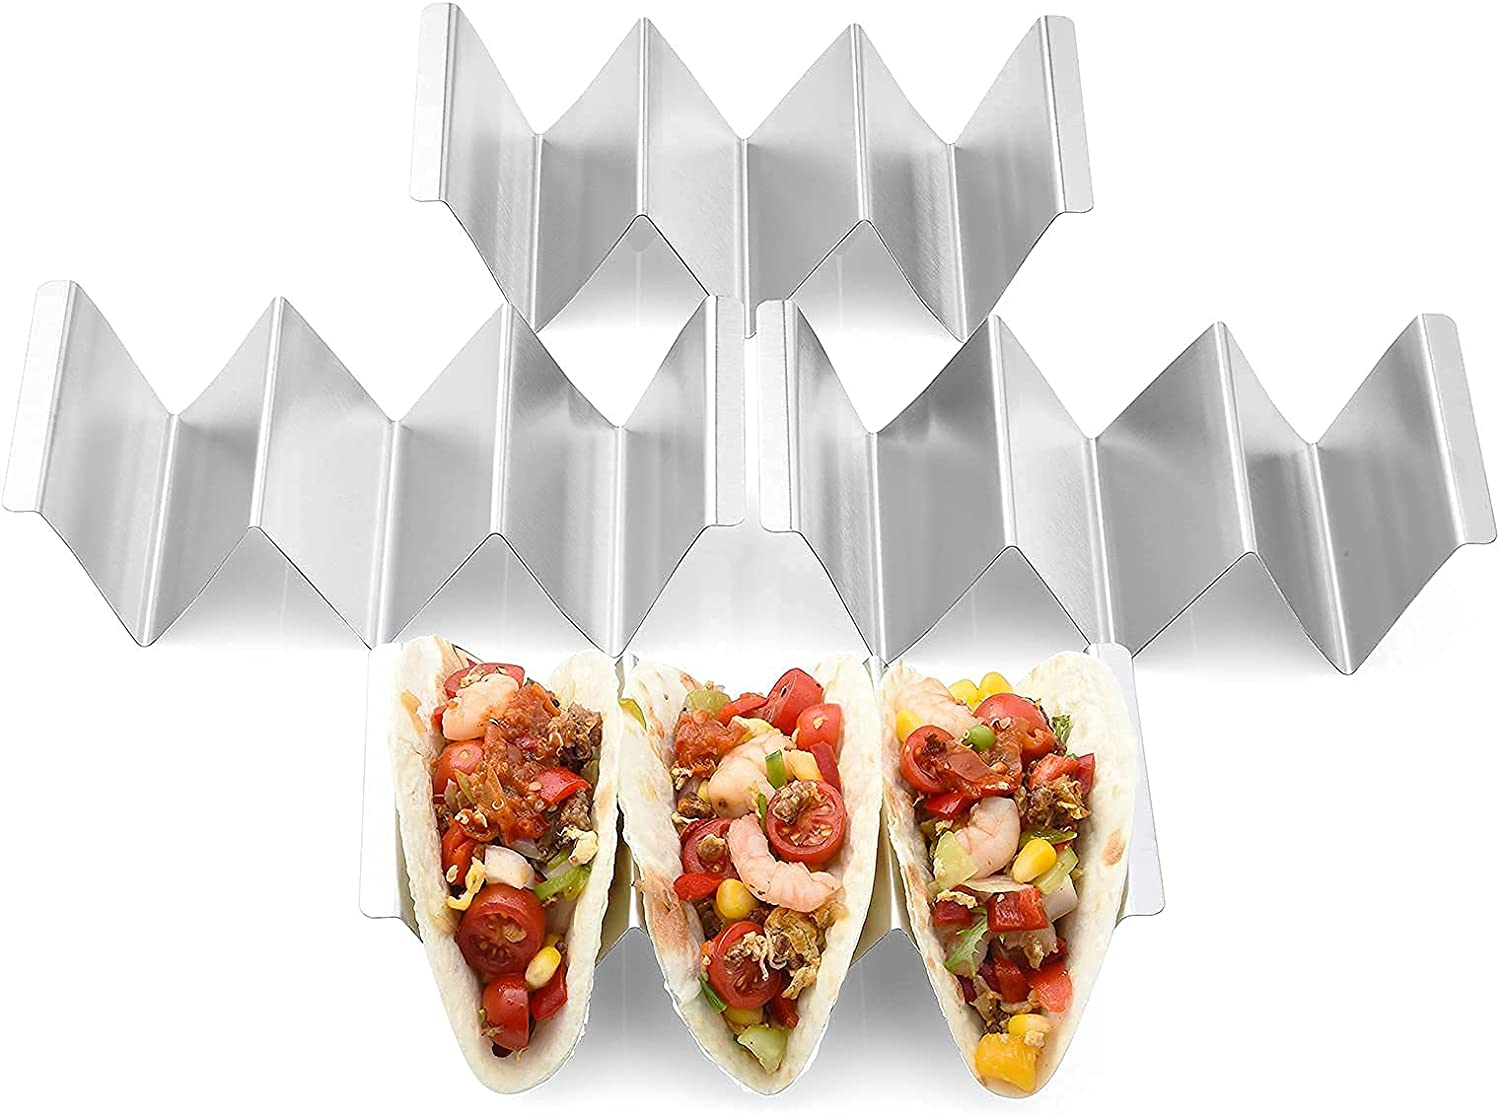 Taco 2021 autumn and winter new Holders 4 Packs - Stainless Steel Tray Styl Rack Stand 25% OFF